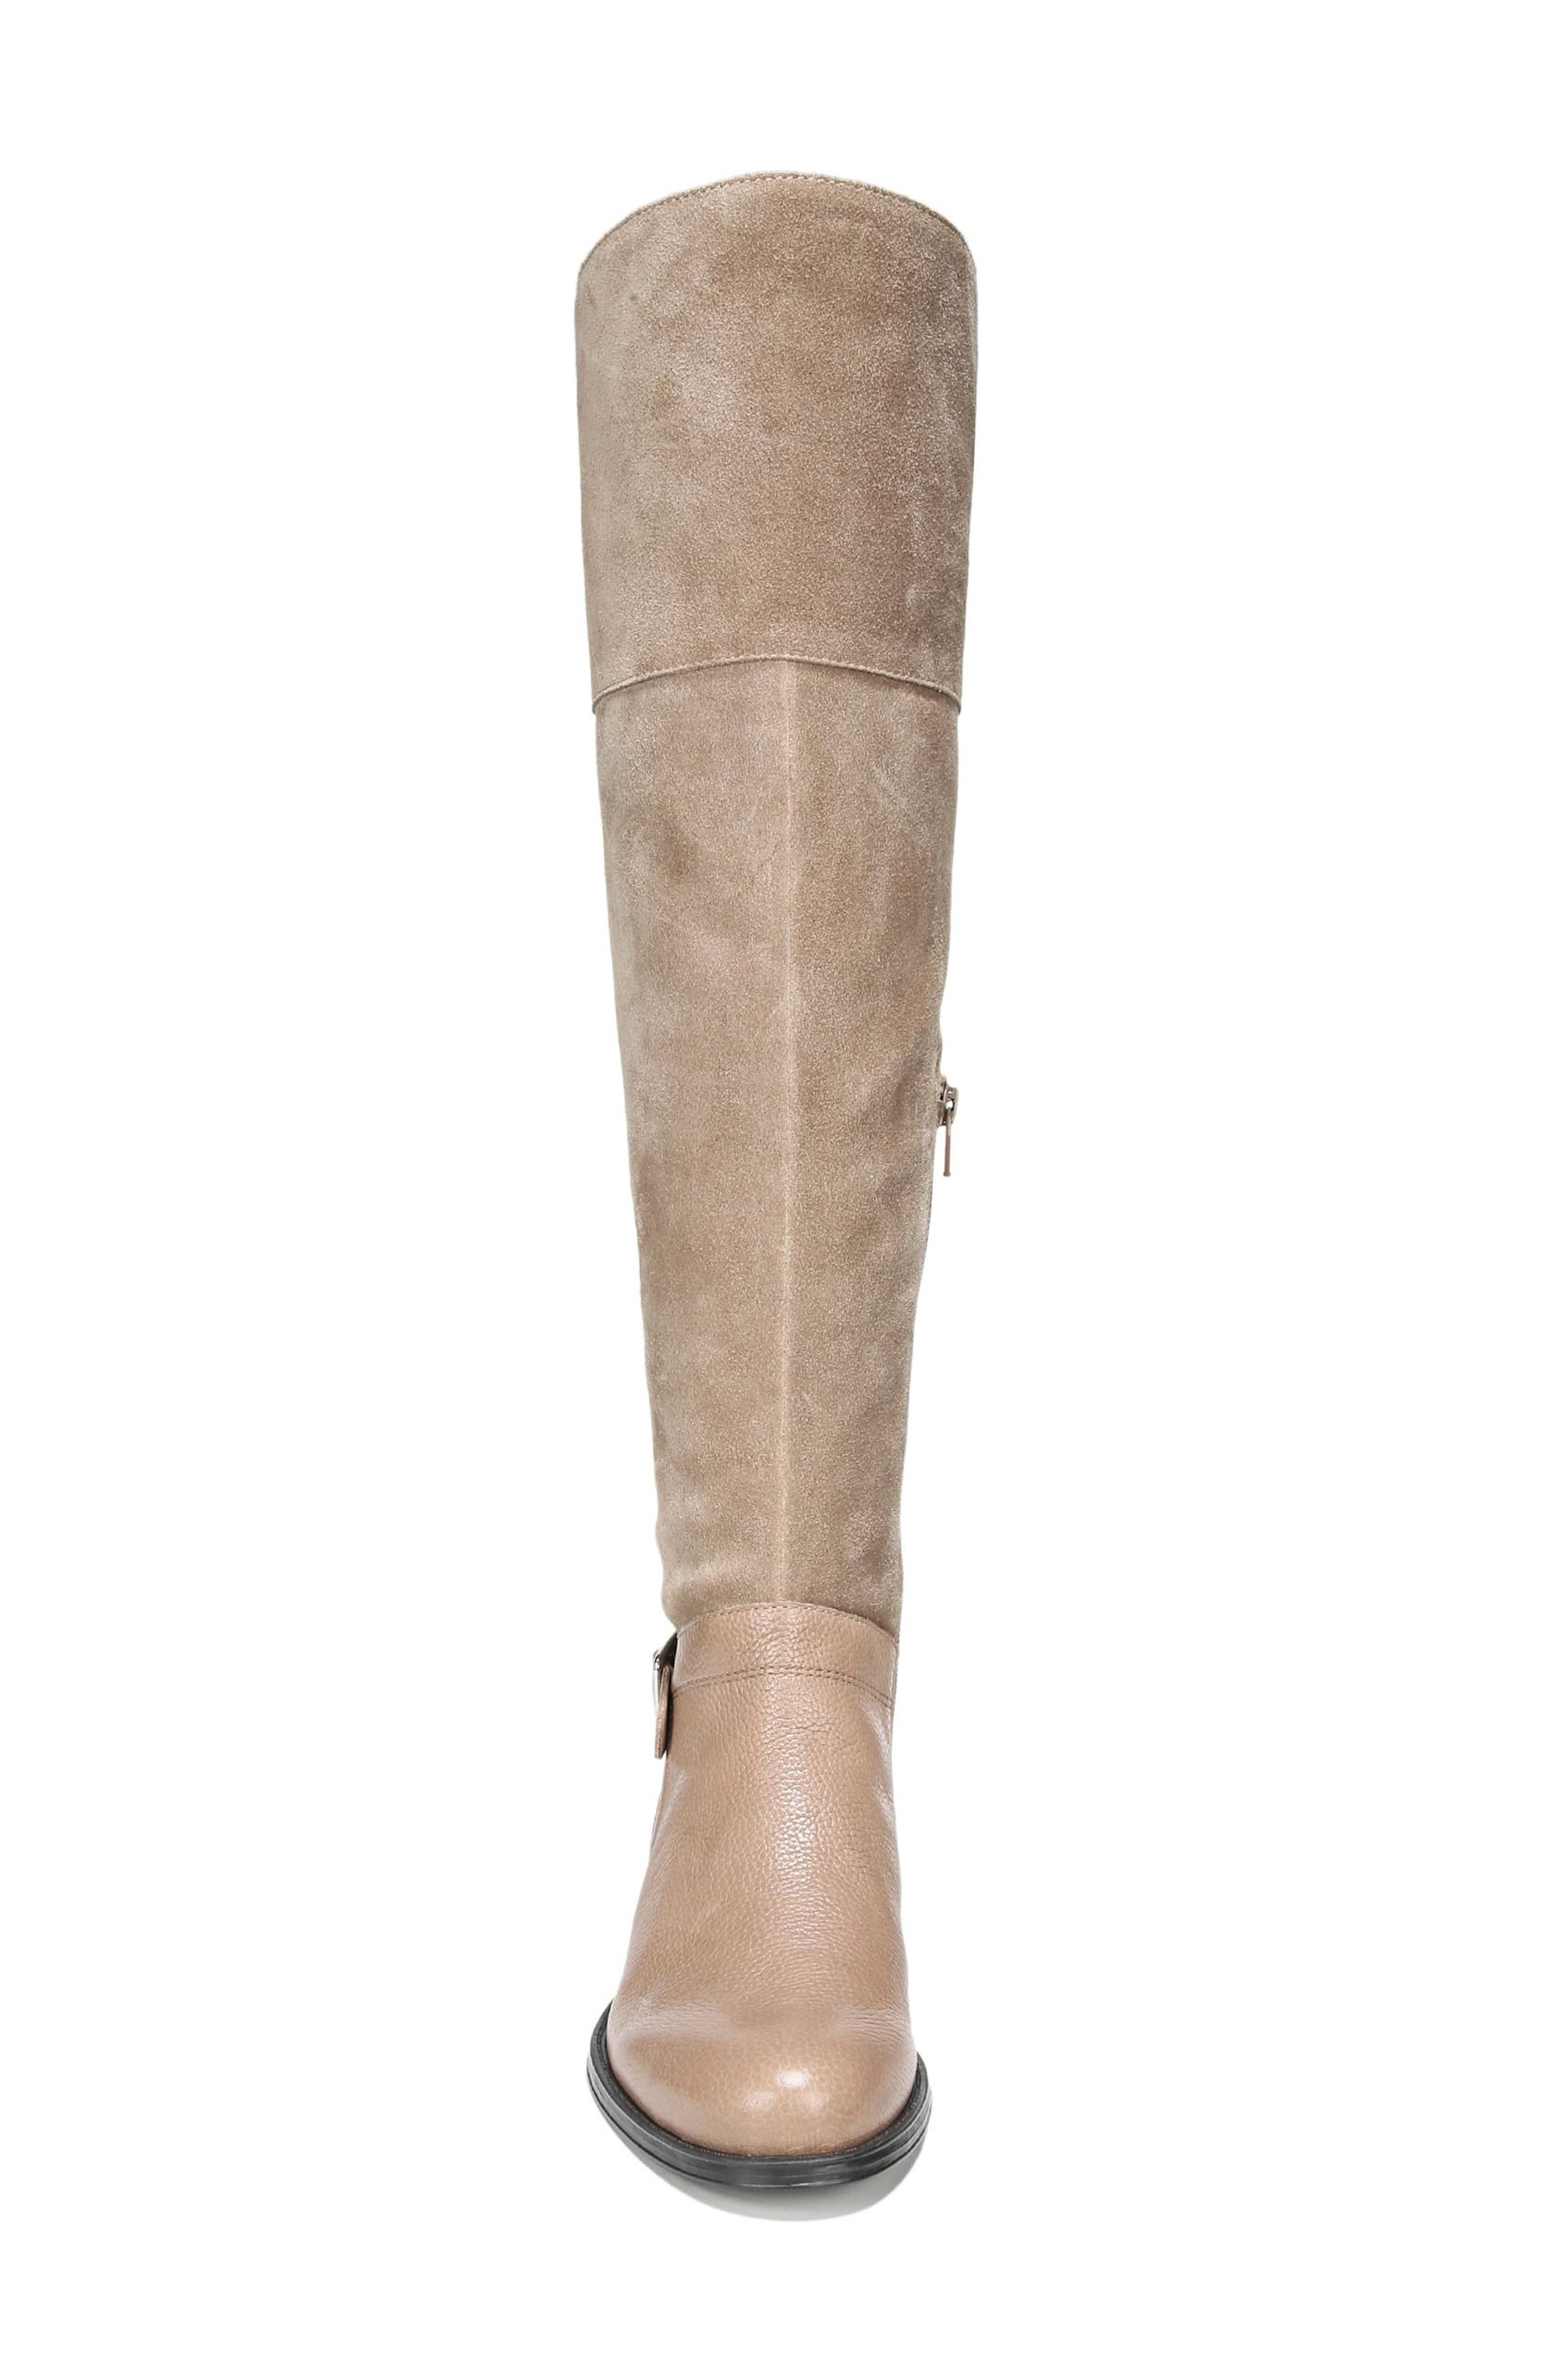 January Over the Knee High Boot,                             Alternate thumbnail 4, color,                             Beige Leather